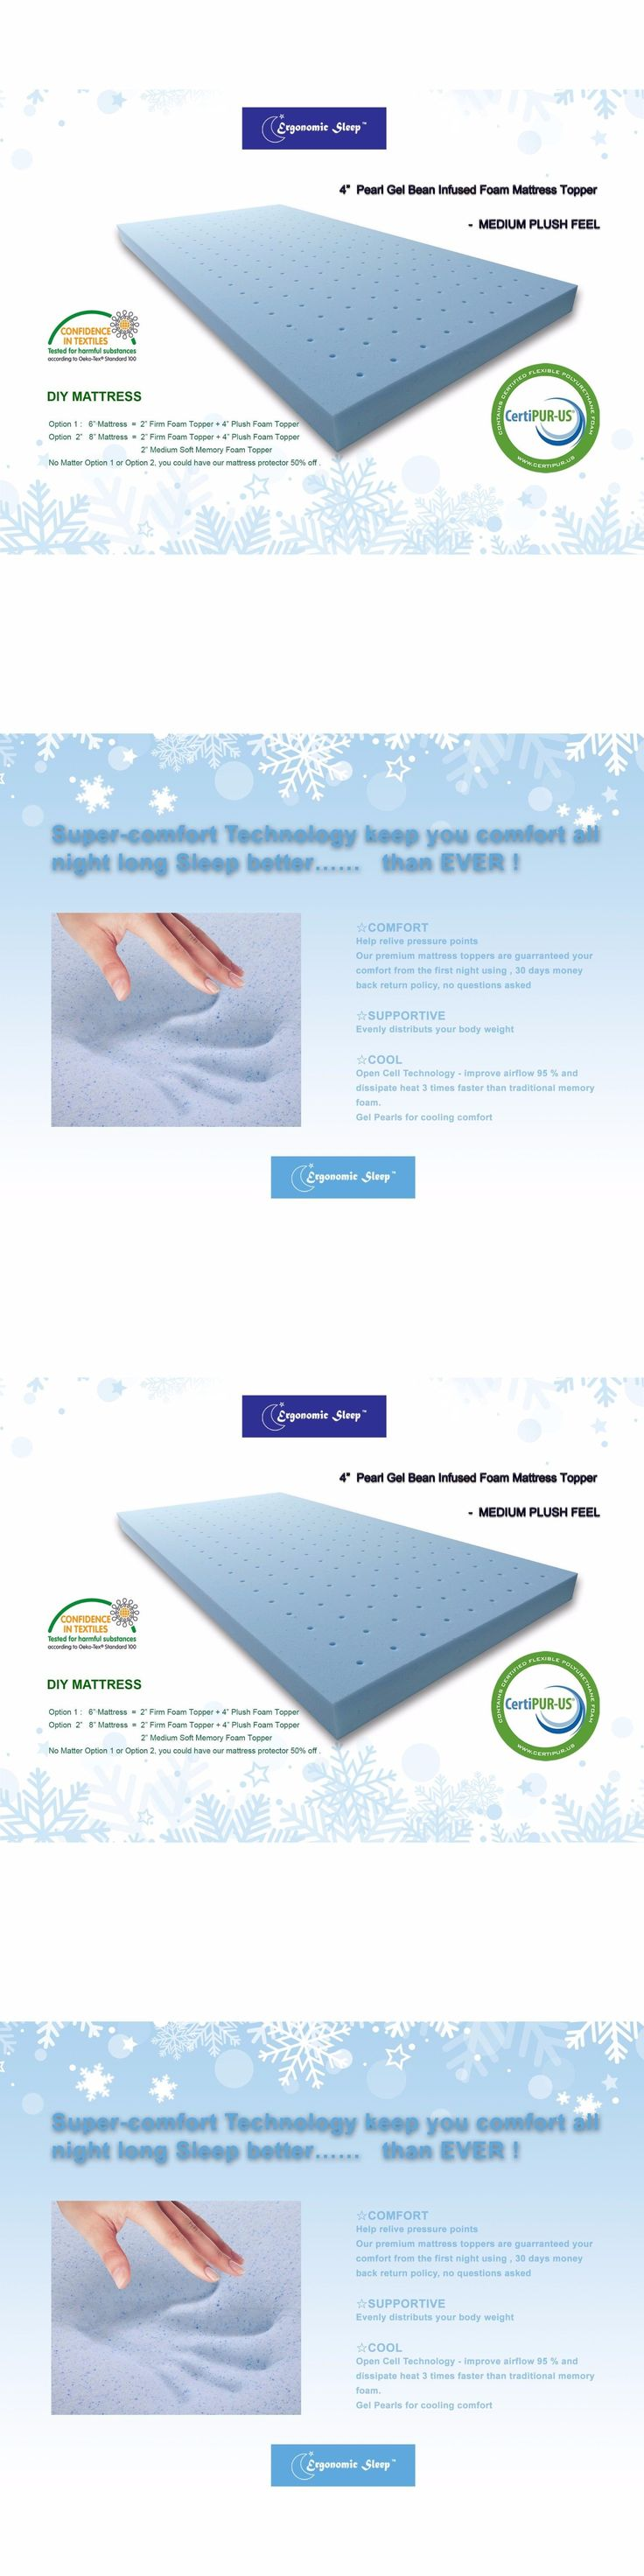 Mattress Pads and Feather Beds 175751: Cool Gel Memory Plush Foam Mattress  Topper Hypoallergenic Bed